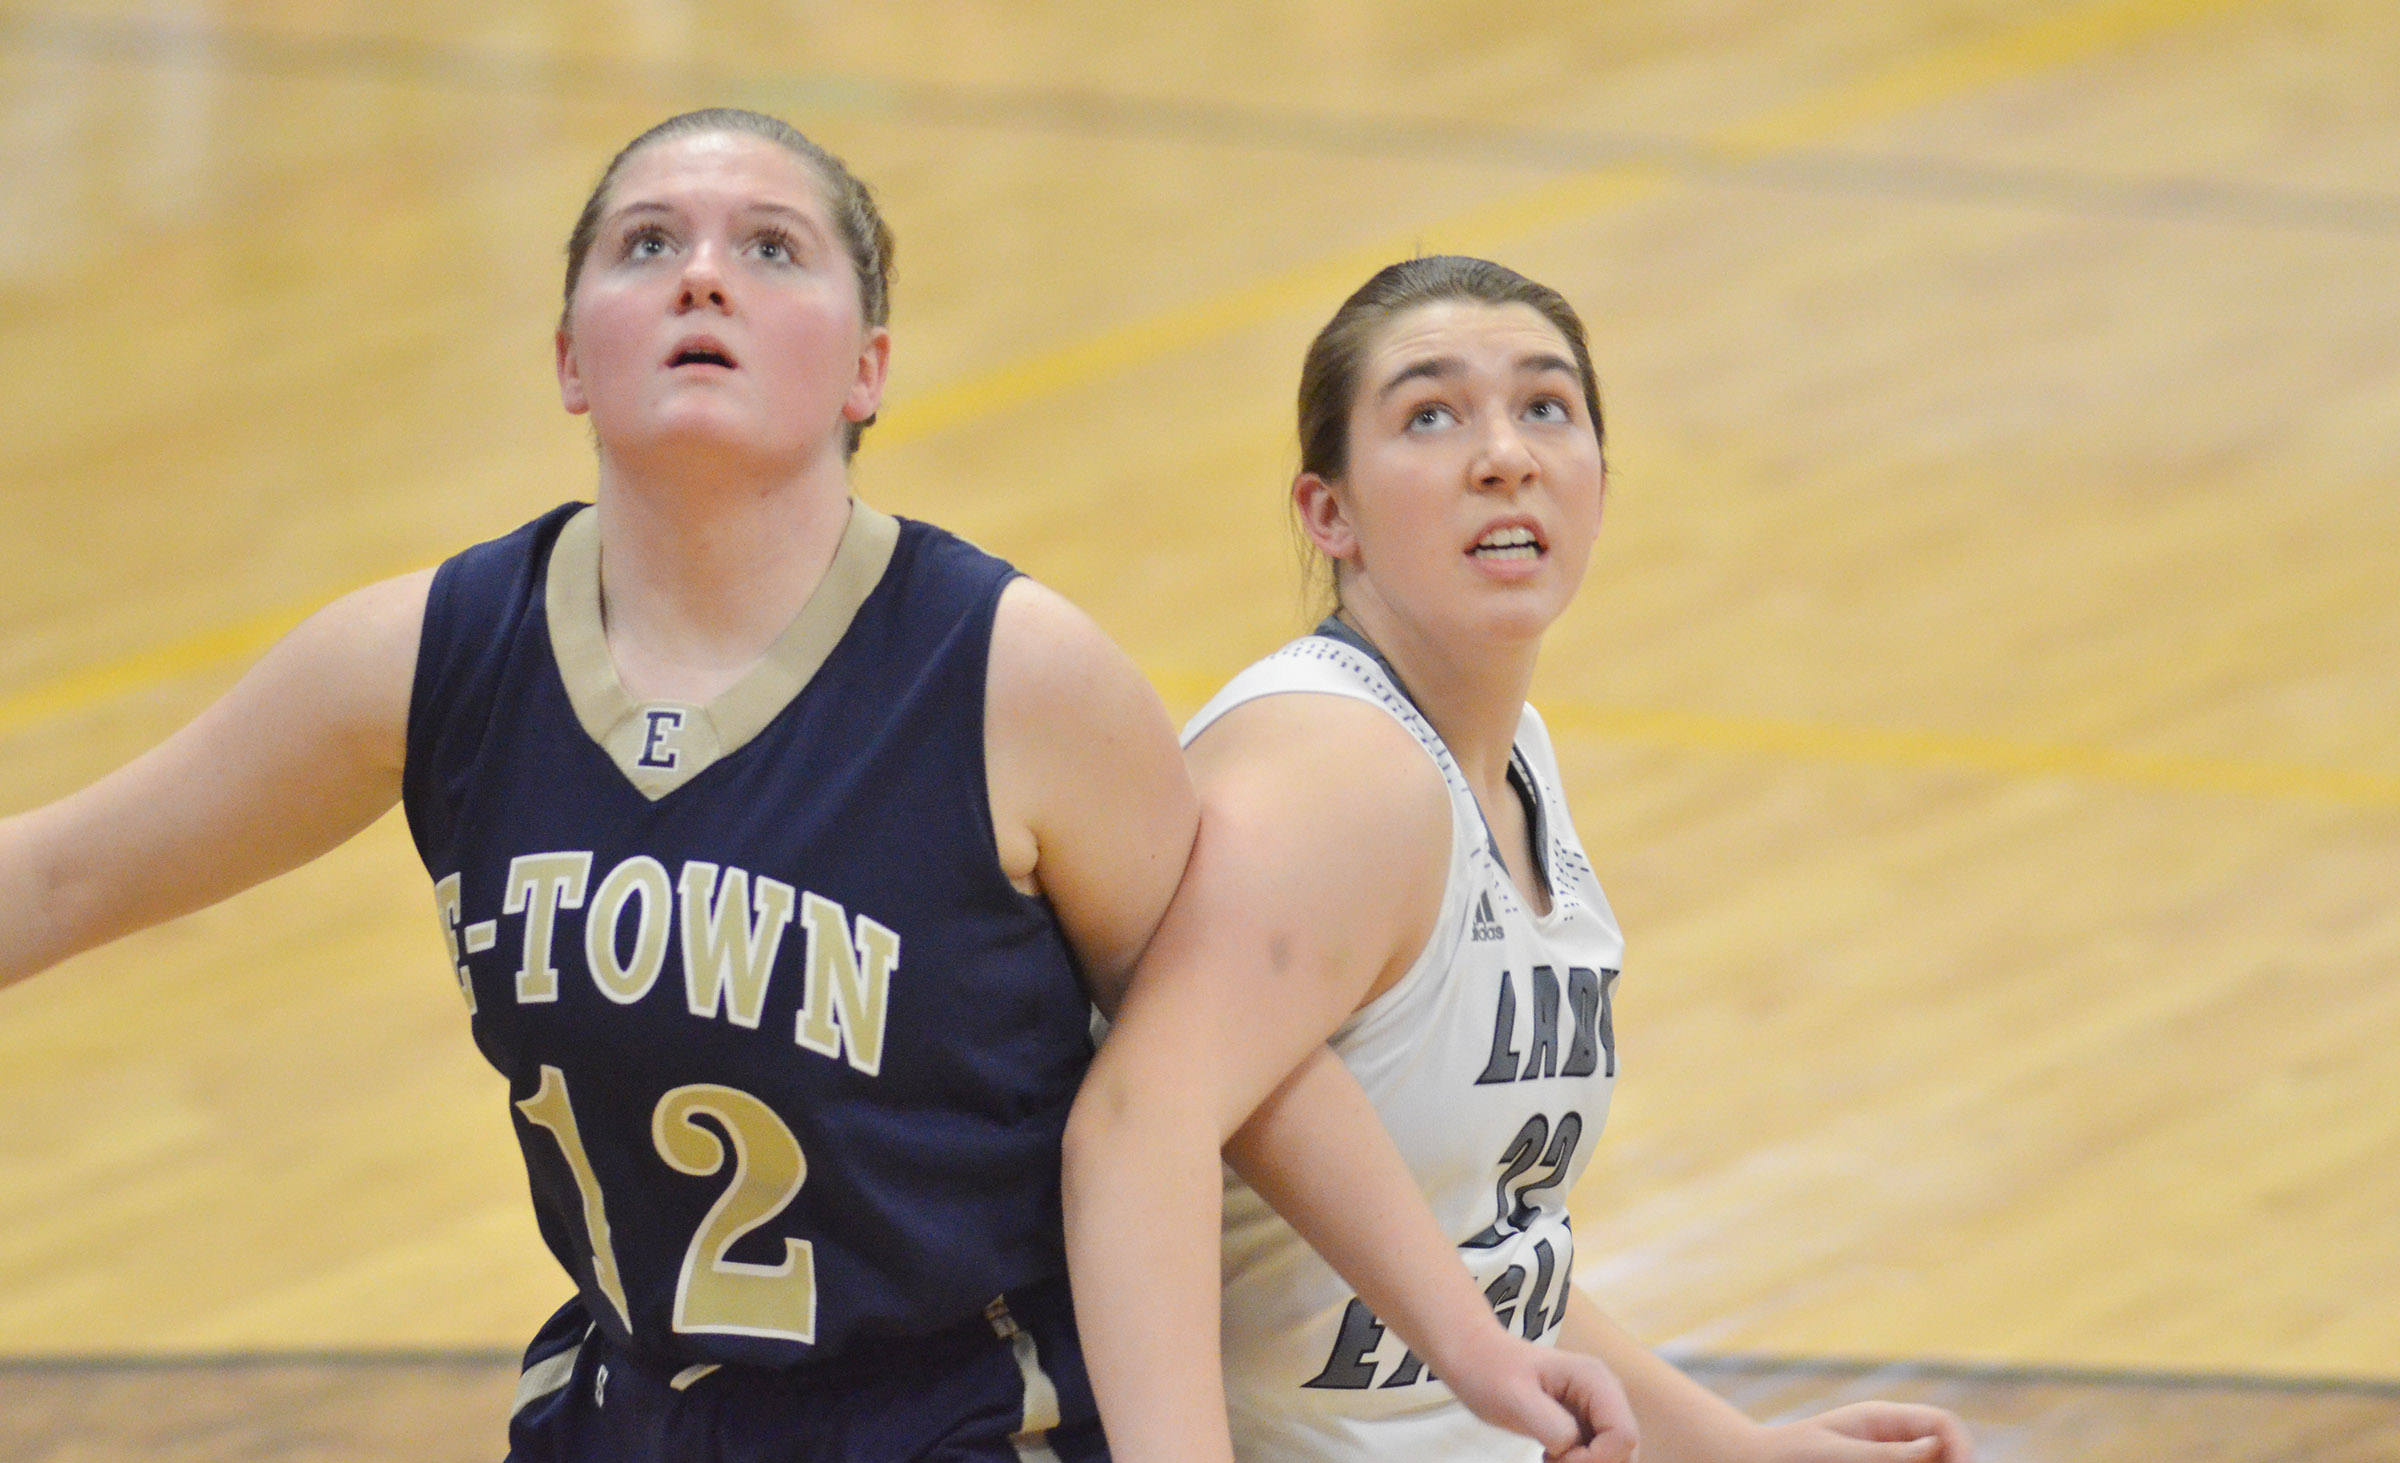 CHS freshman Abi Wiedewitsch fights for a rebound.